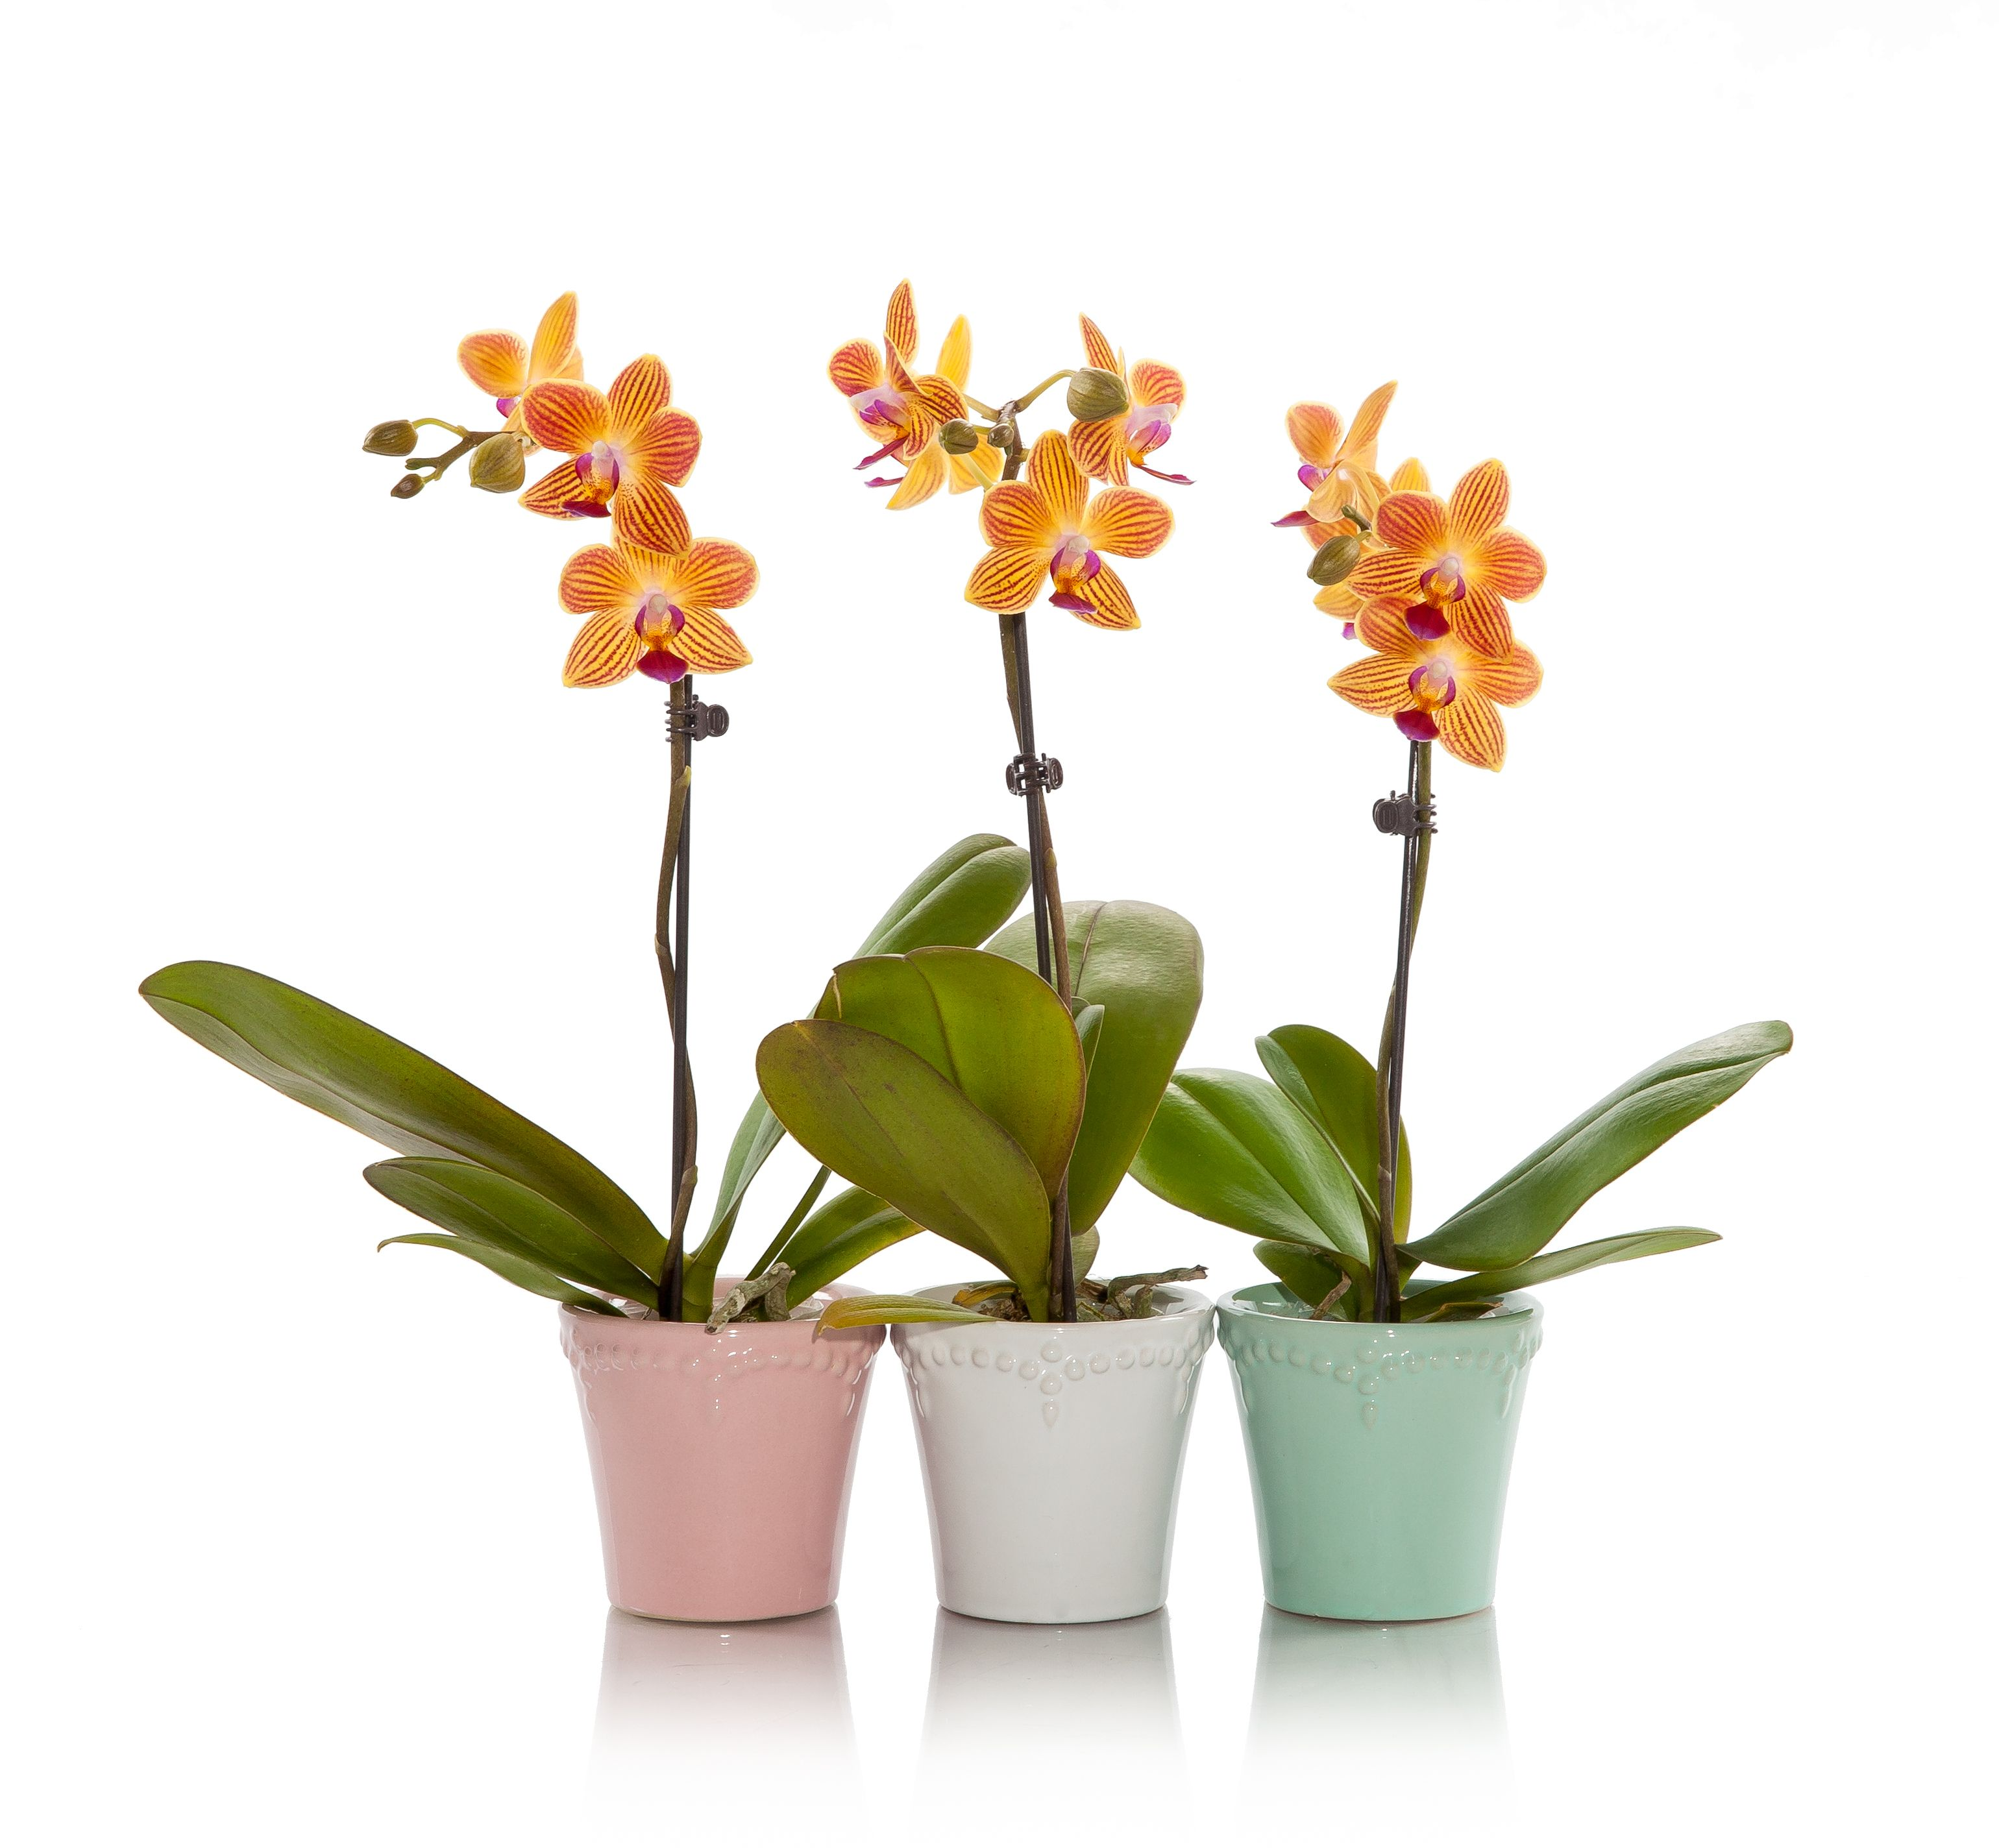 3 Ways To Use Mini Orchids For Your Next Sorority Event